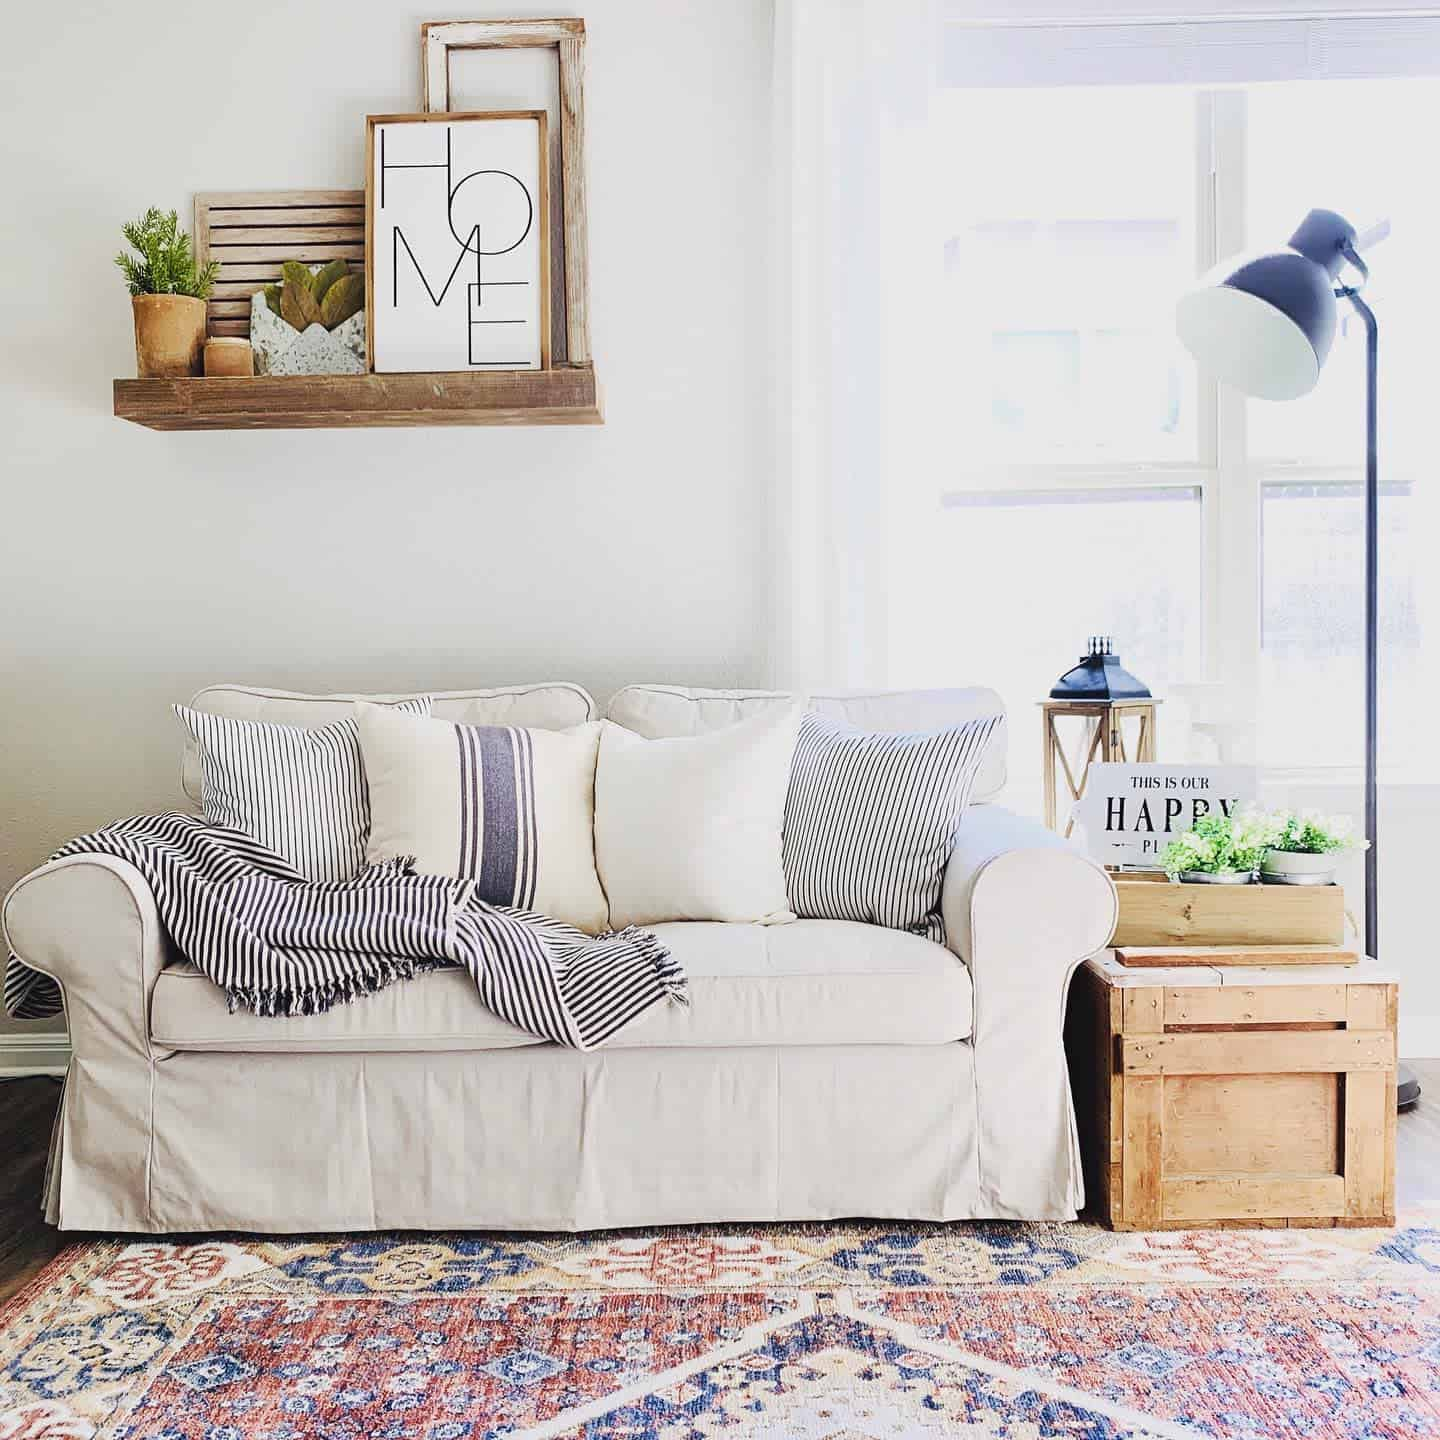 Rugs Pillows And Blankets Farmhouse Living Room Ideas Swiftcohome